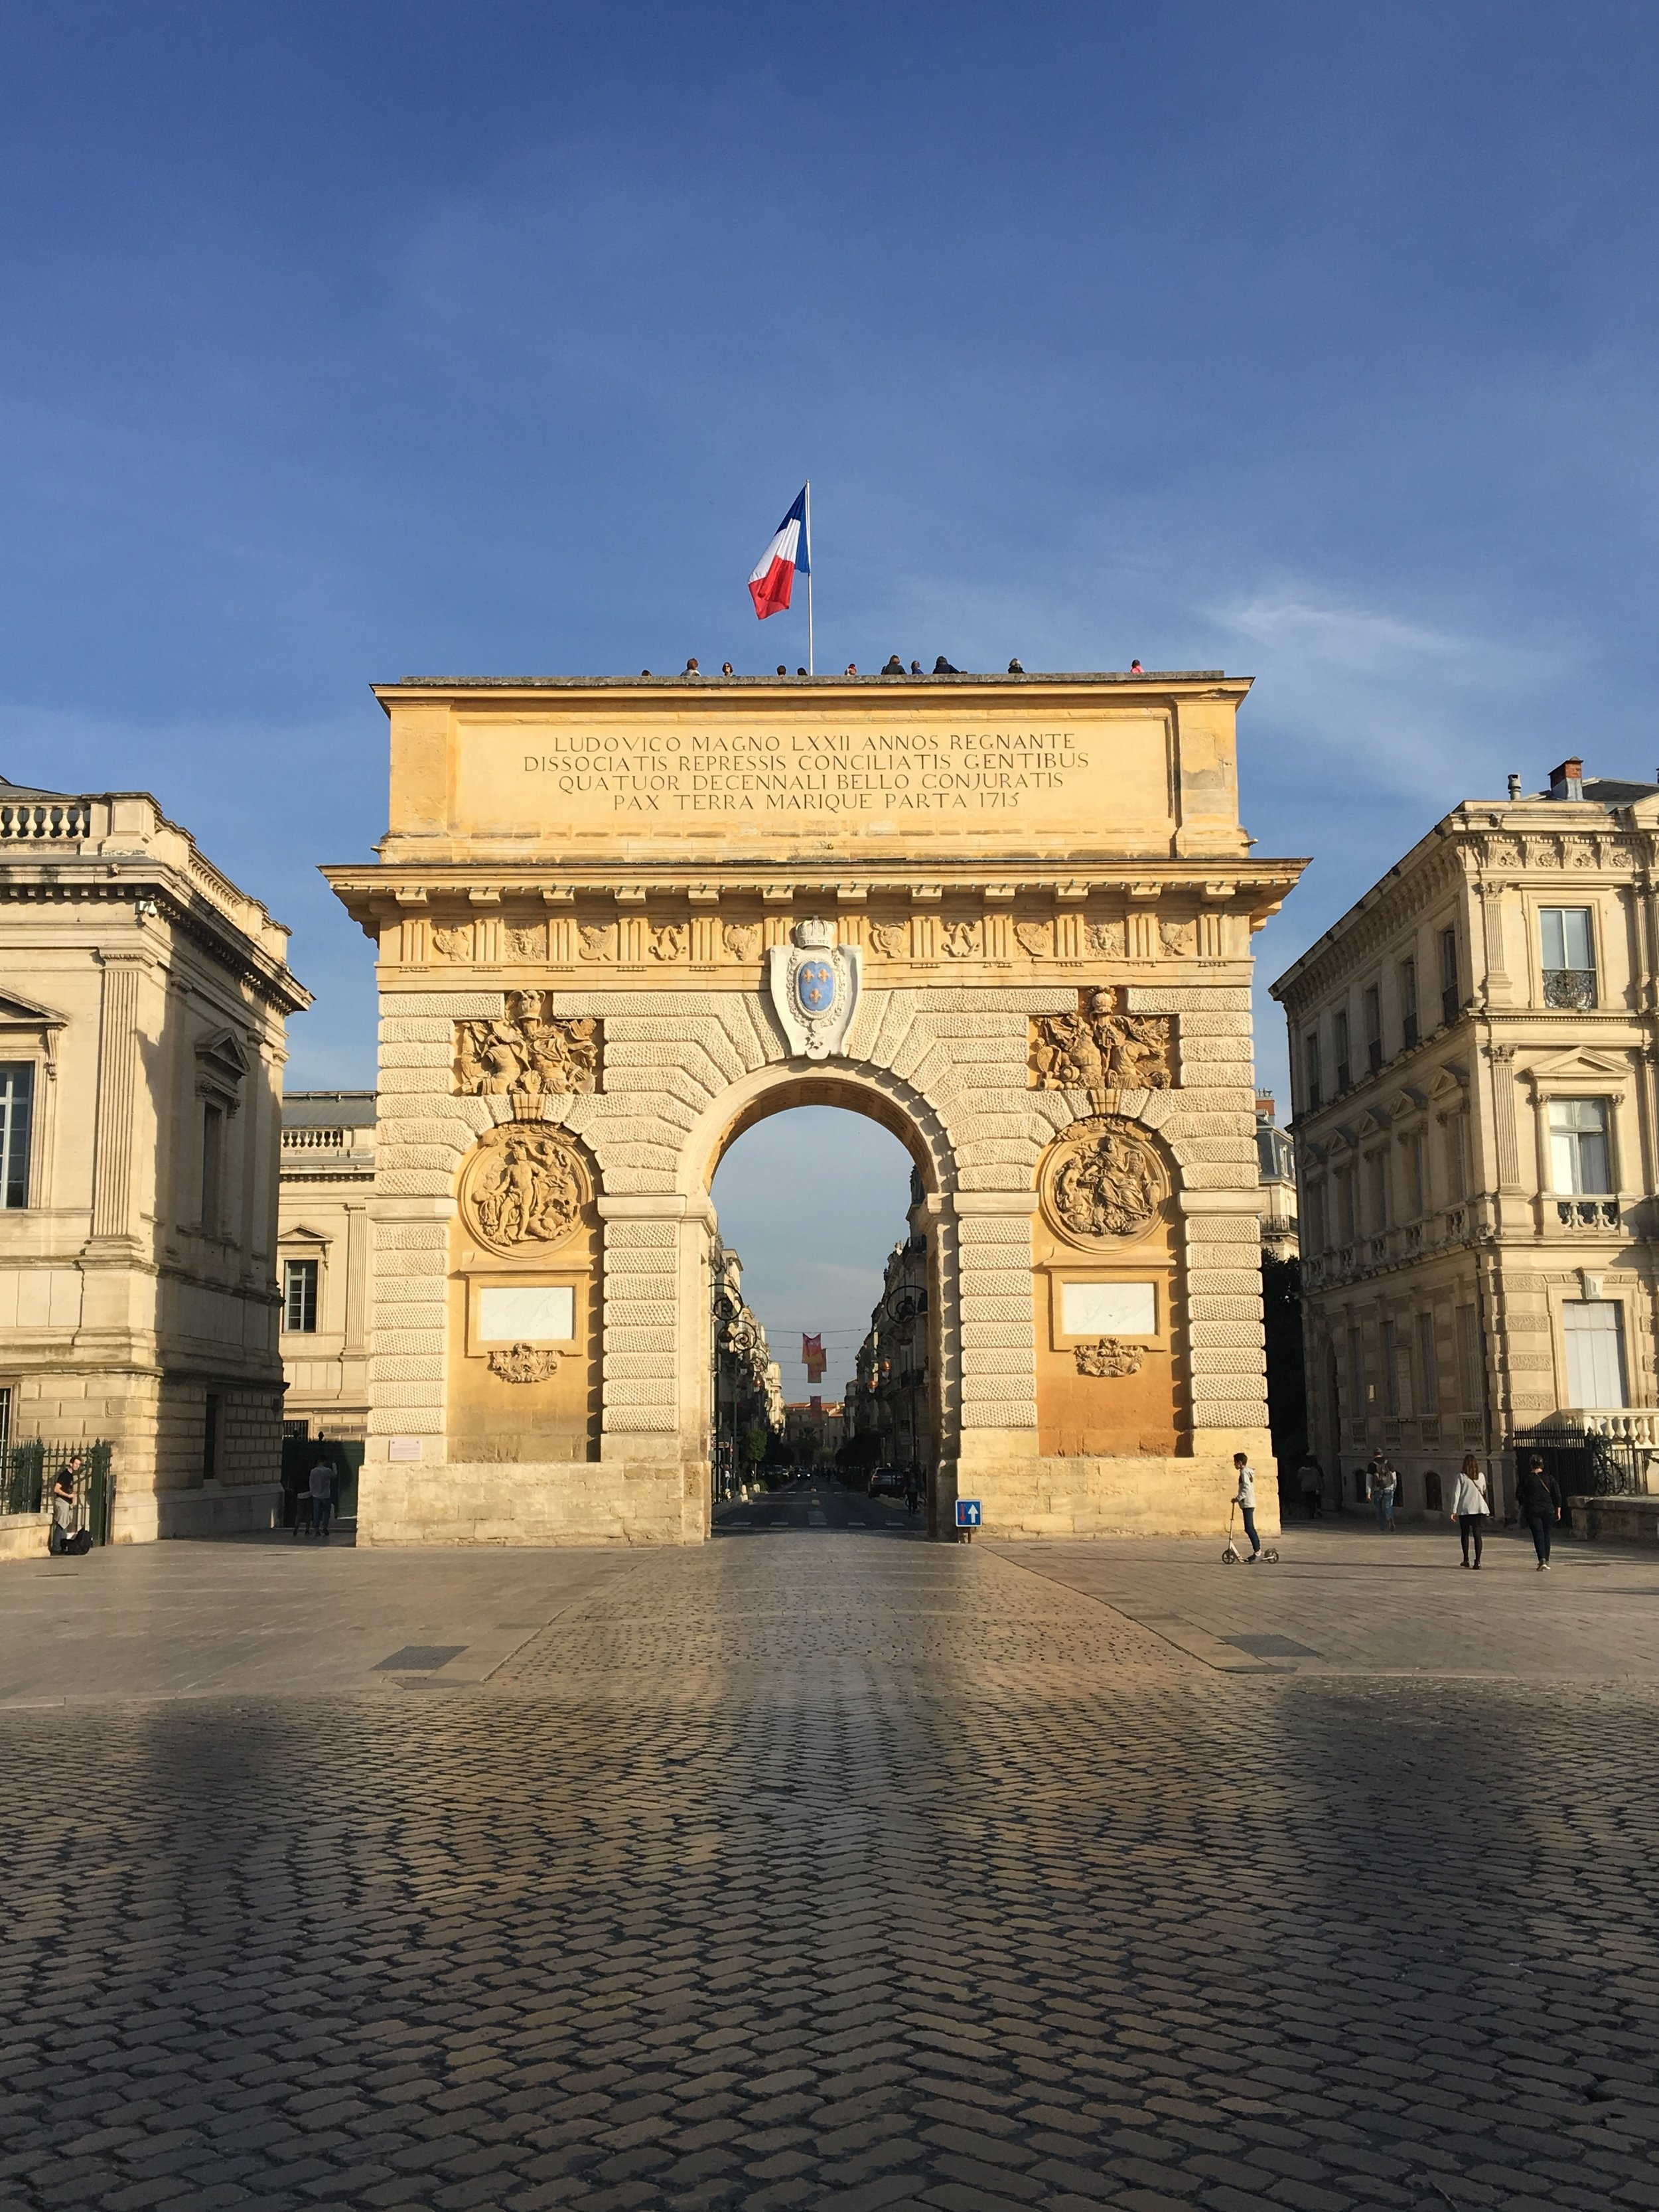 The Arc de Triomphe or Place de Peyrou